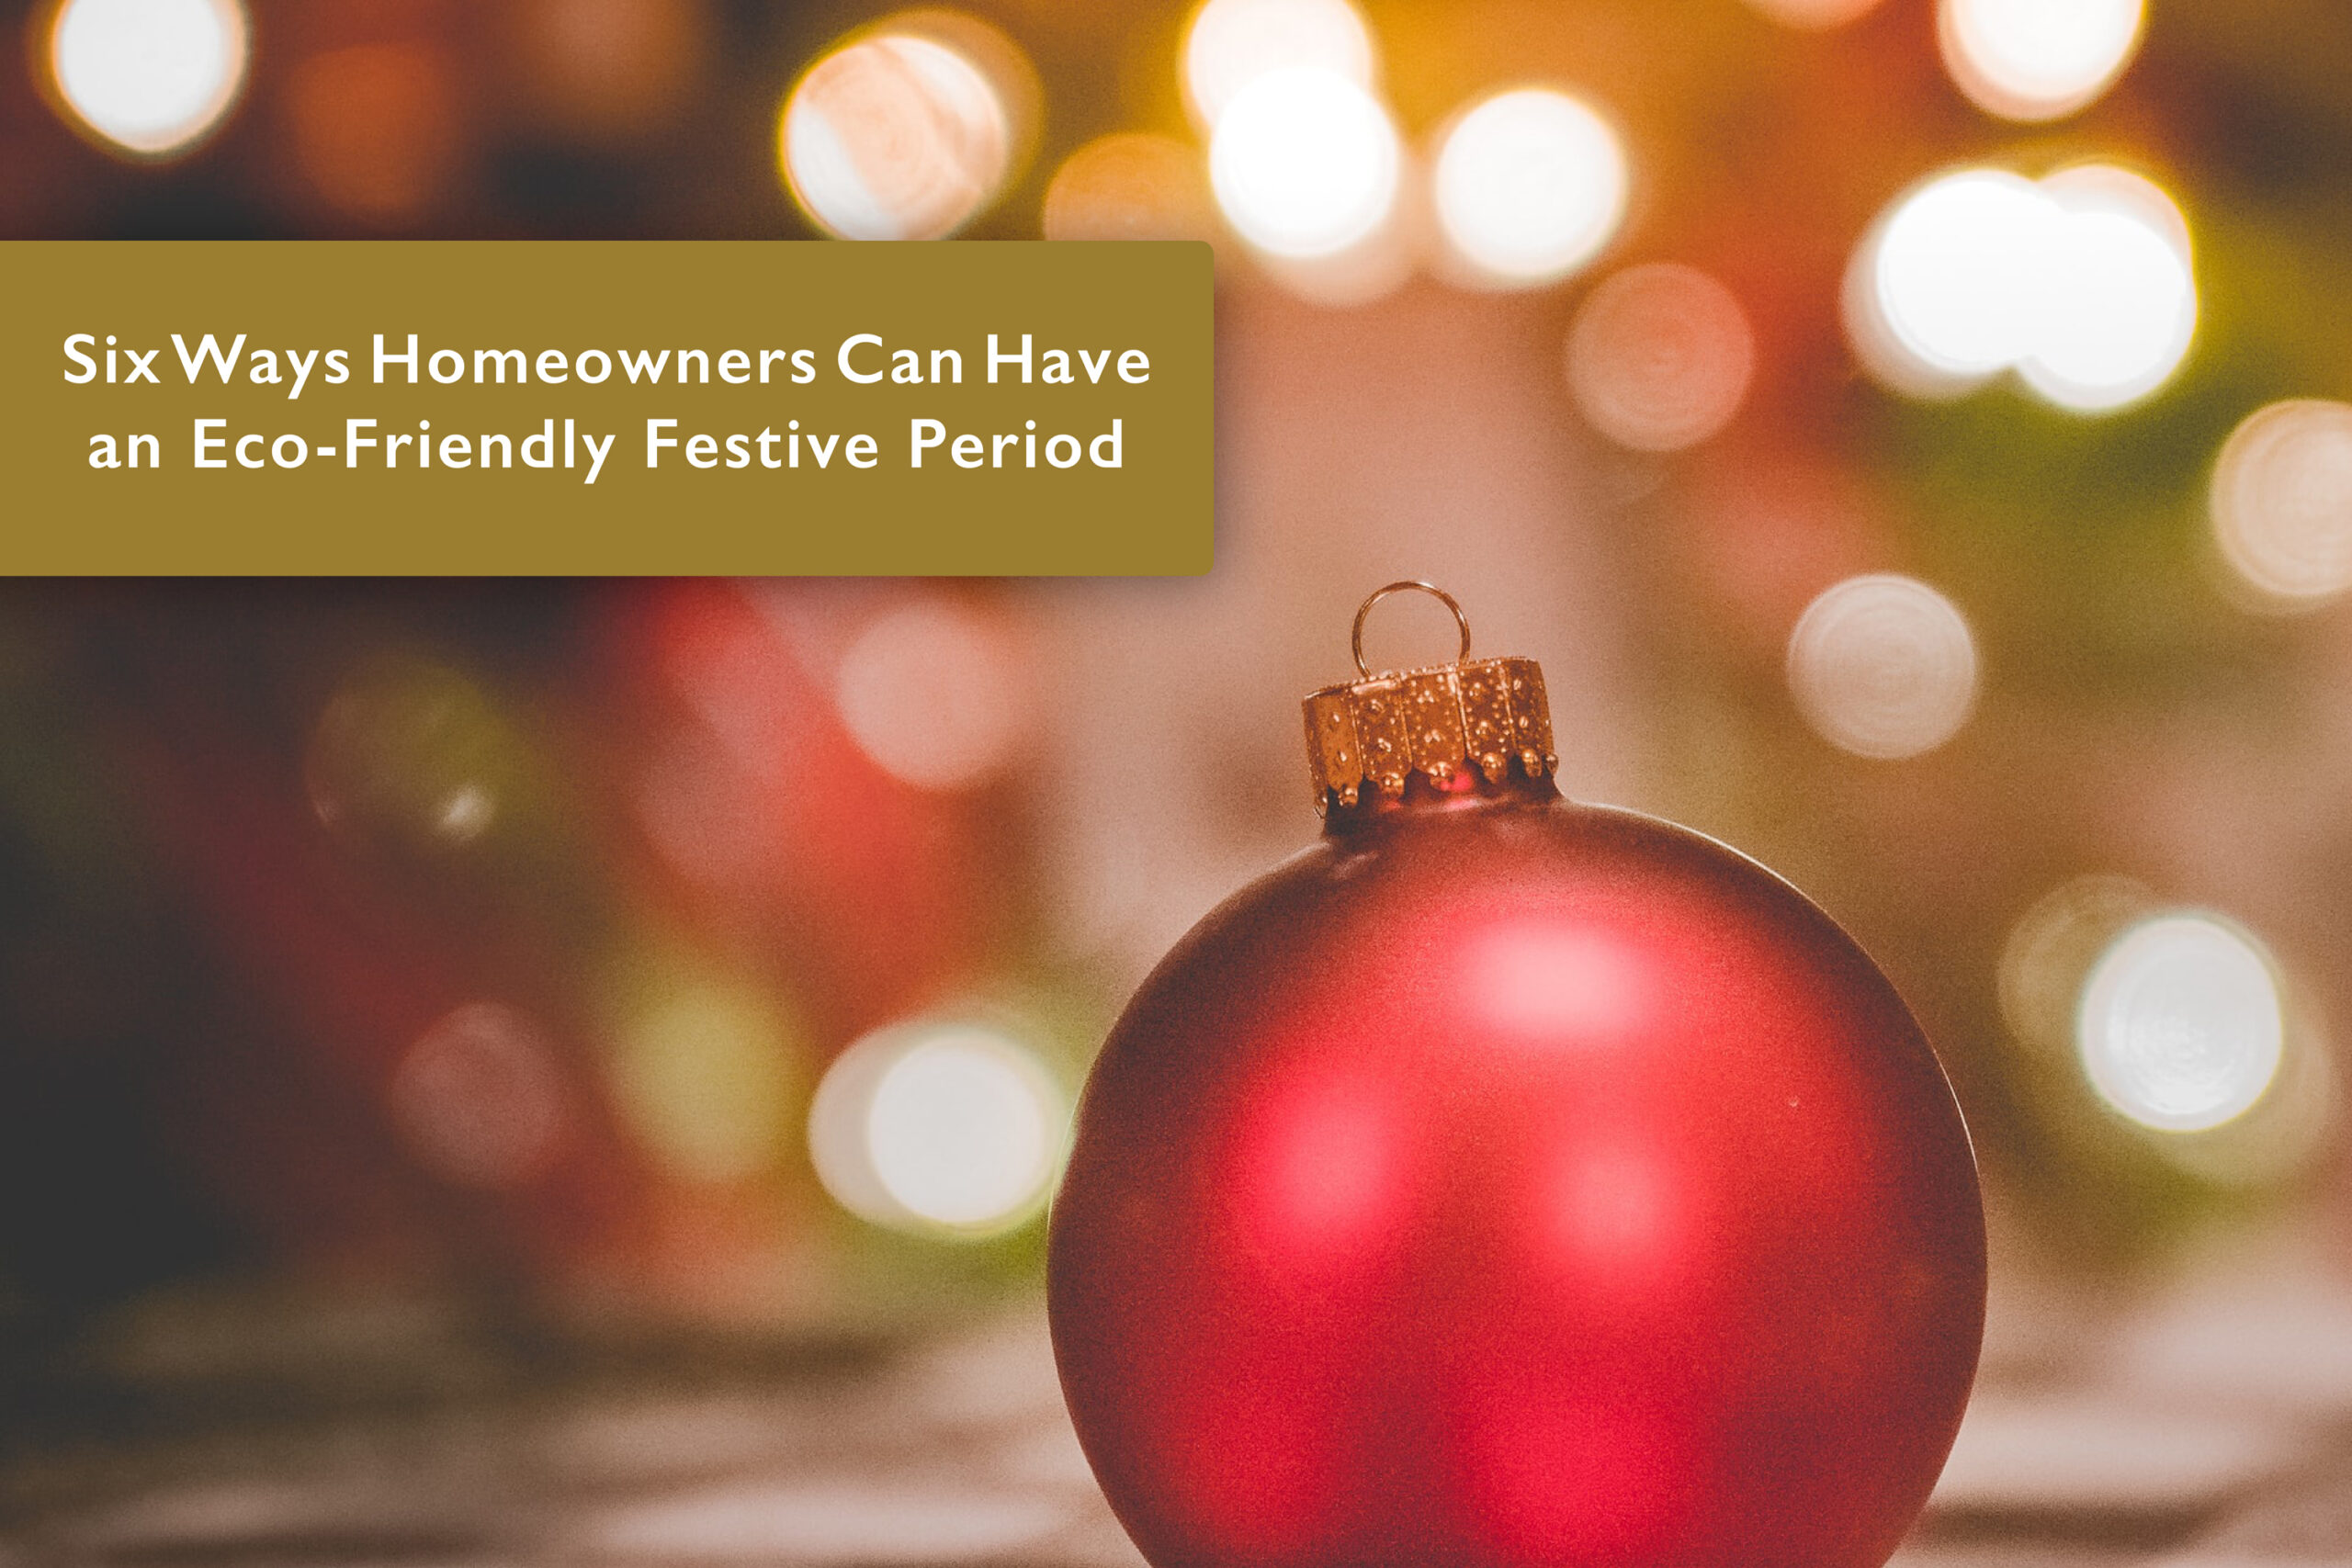 Six Ways Homeowners Can Have an Eco-Friendly Festive Period